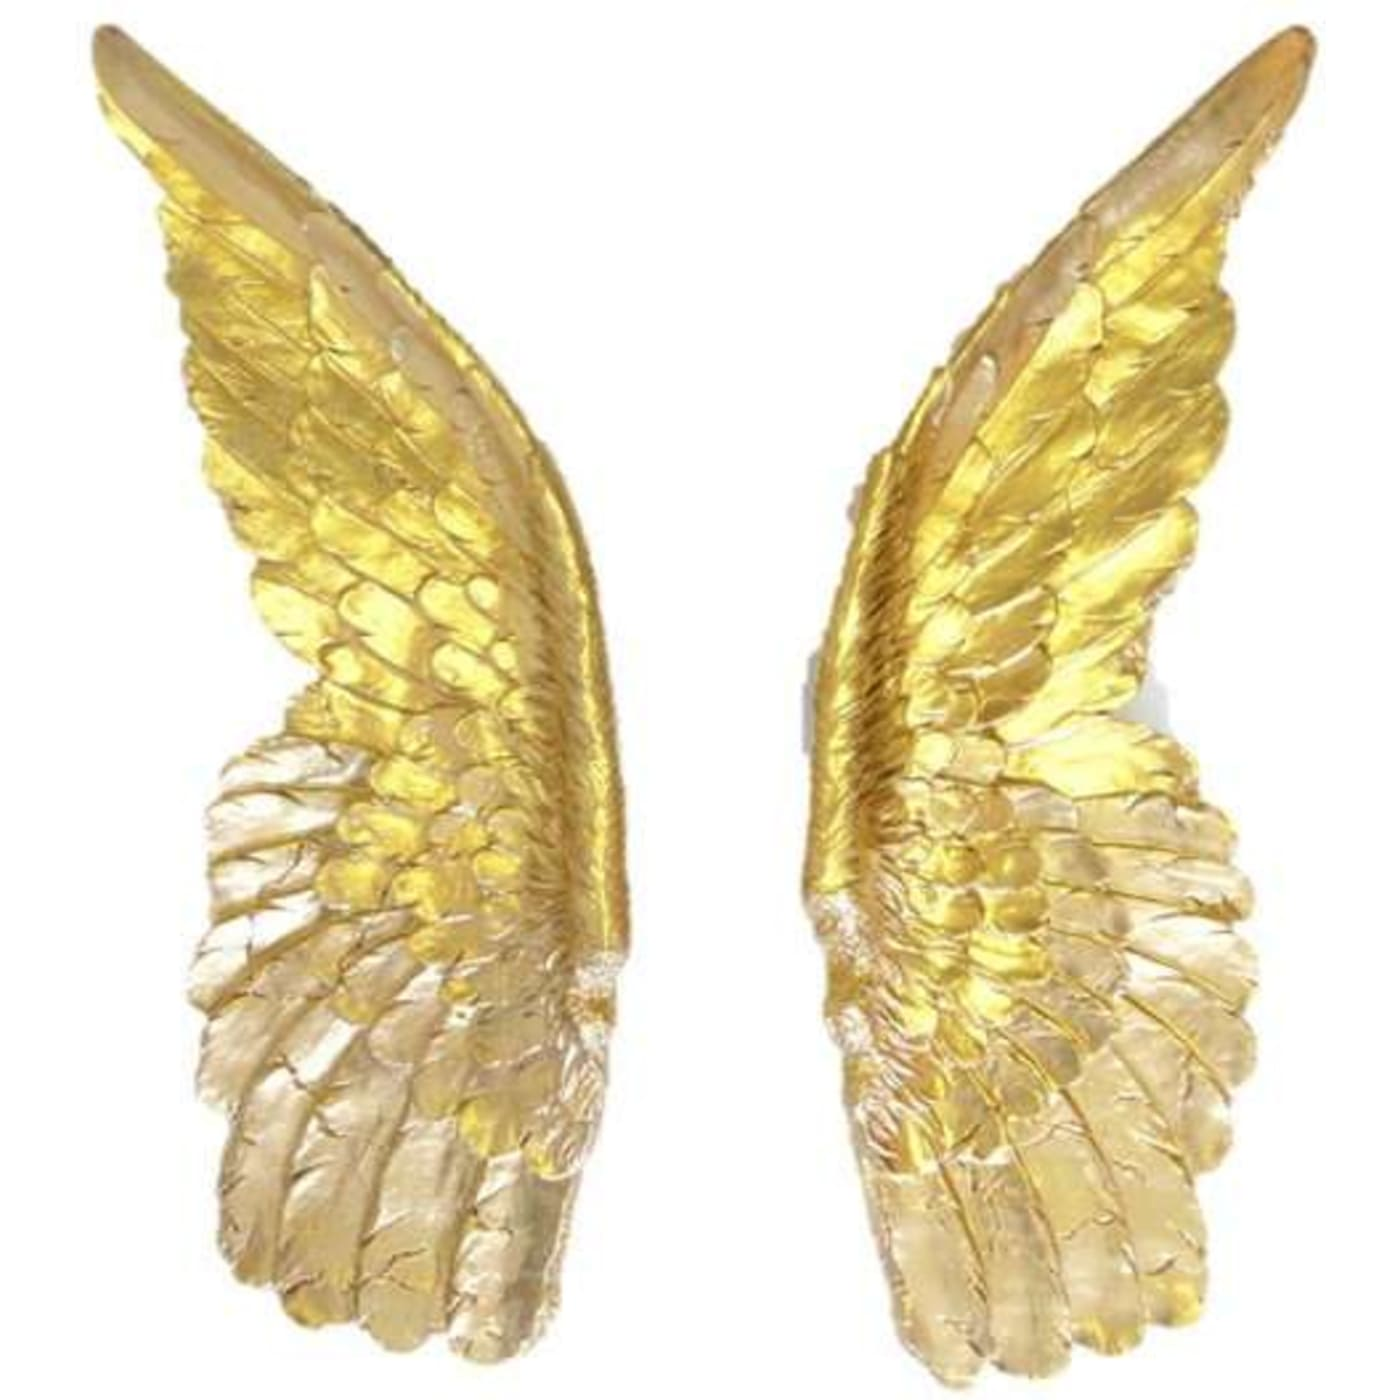 Near and Deer XLANG08 Gold XL Angel Wings Wall Mount Decor | Goed